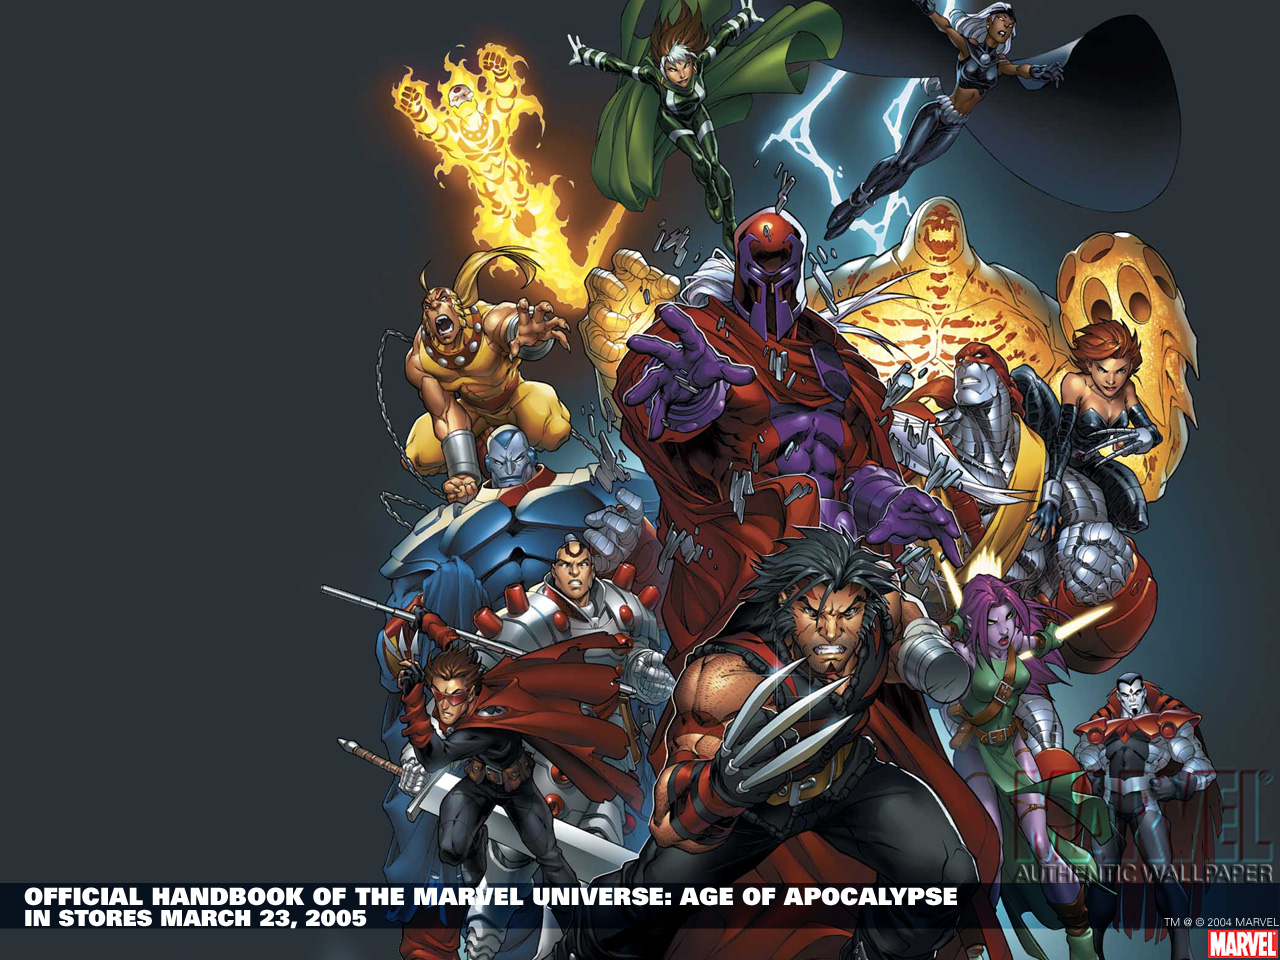 Marvel hd wallpaper techmynd 92 500x375 100 Marvel Super Heroes HD 1280x960